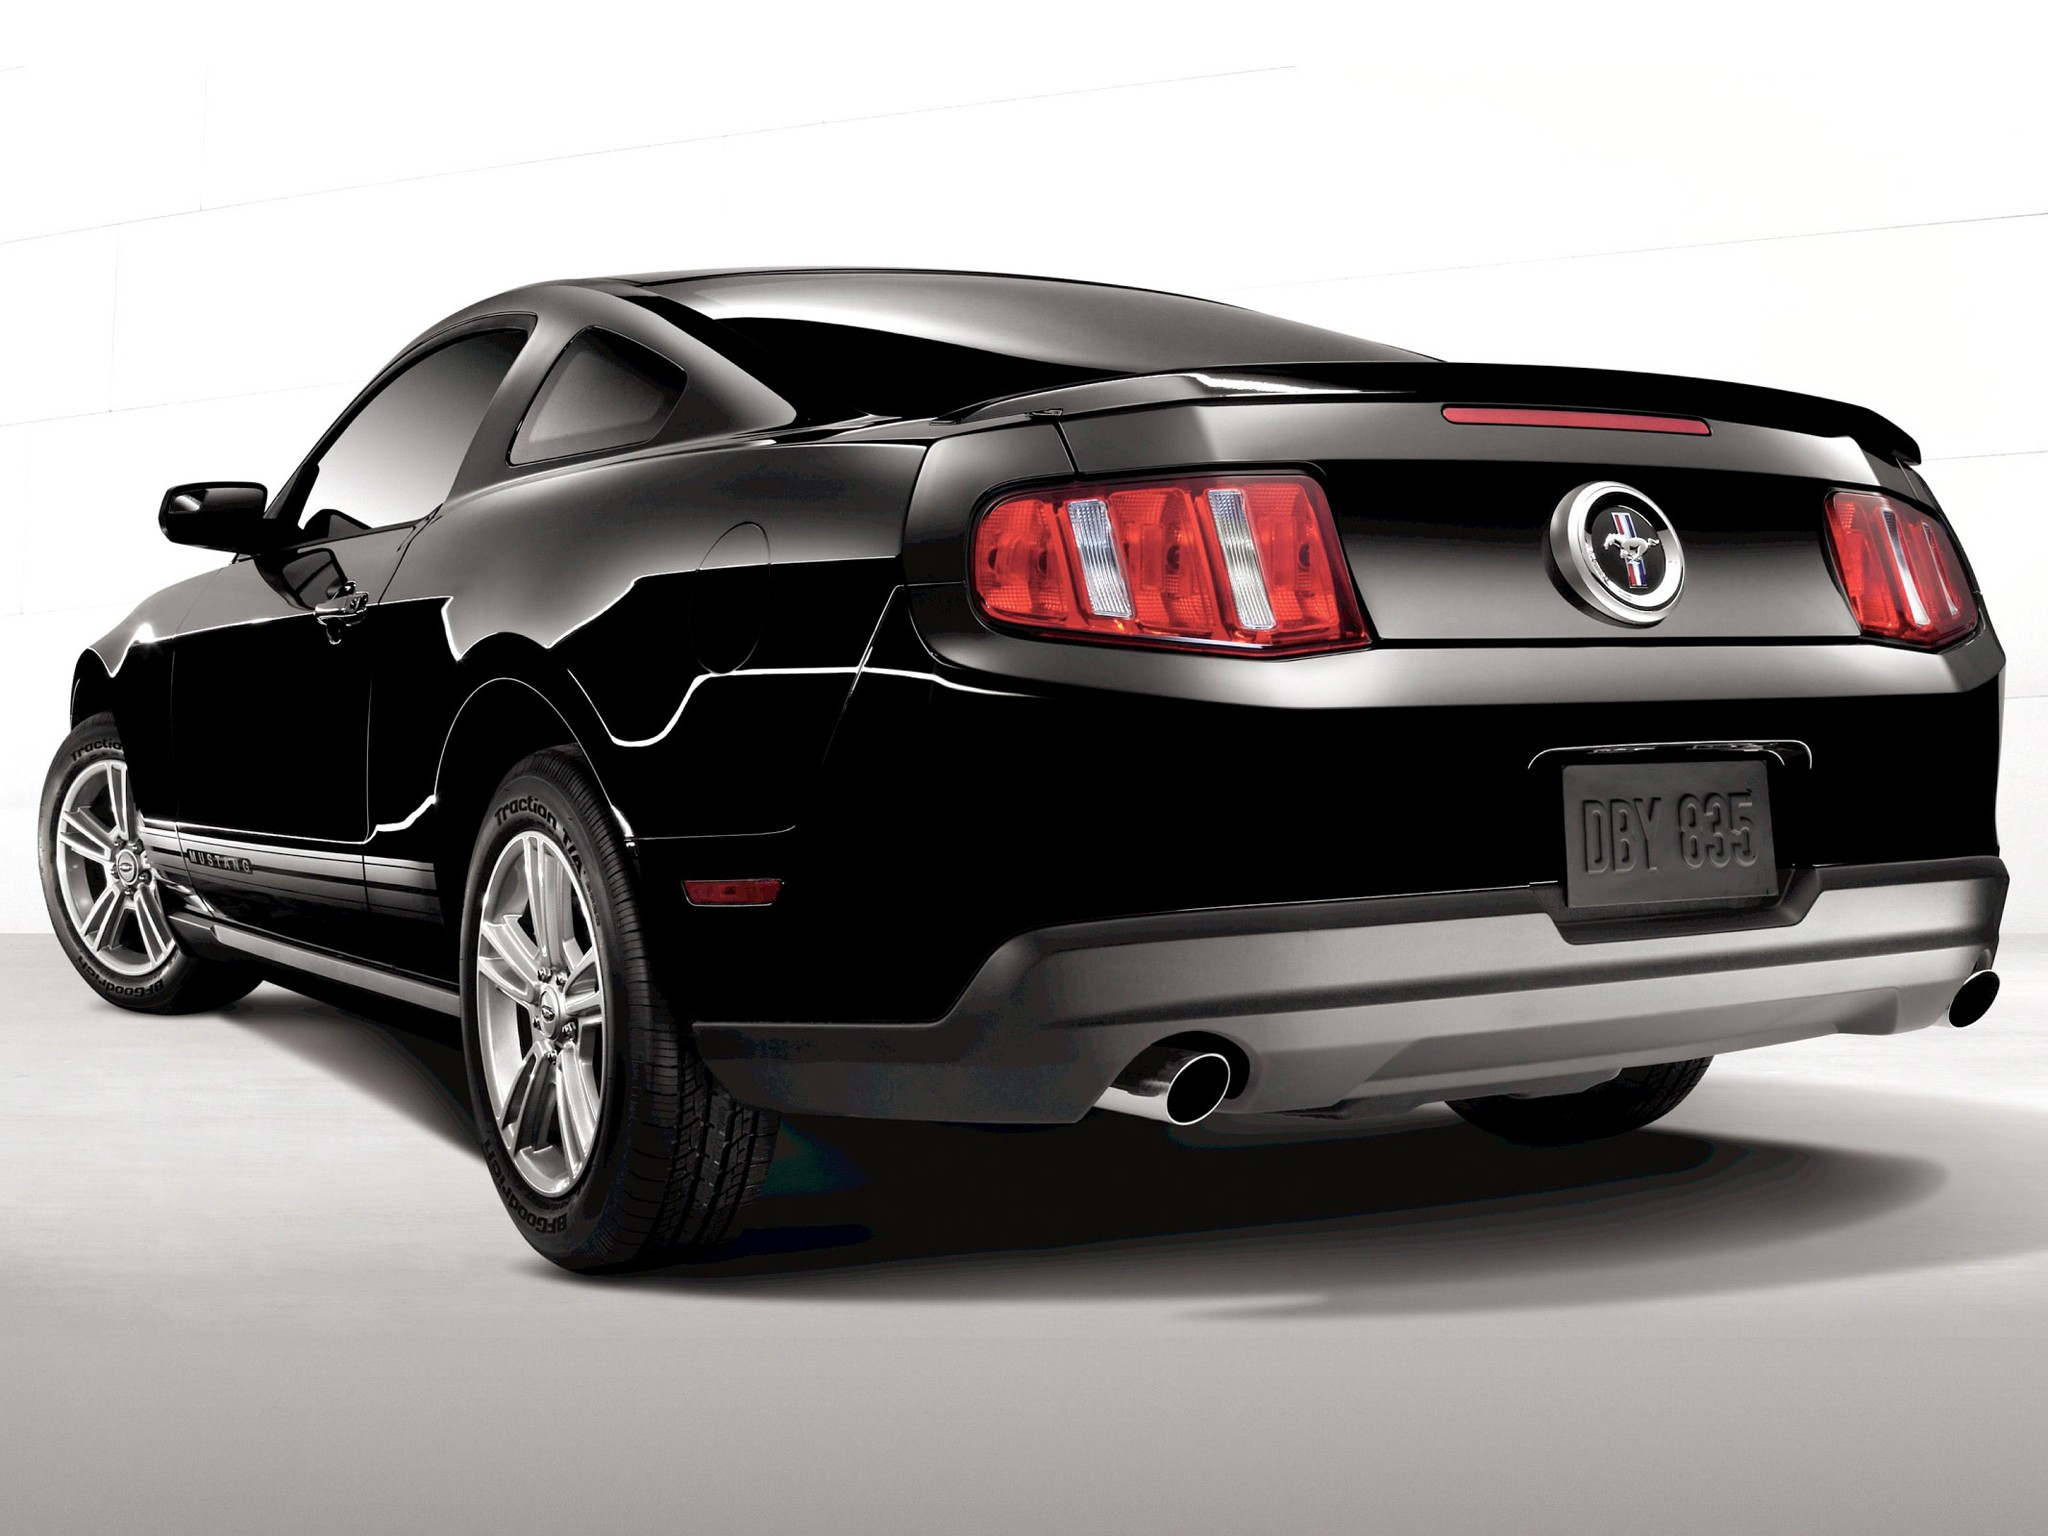 Ford Mustang Specs Amp Photos 2009 2010 2011 2012 2013